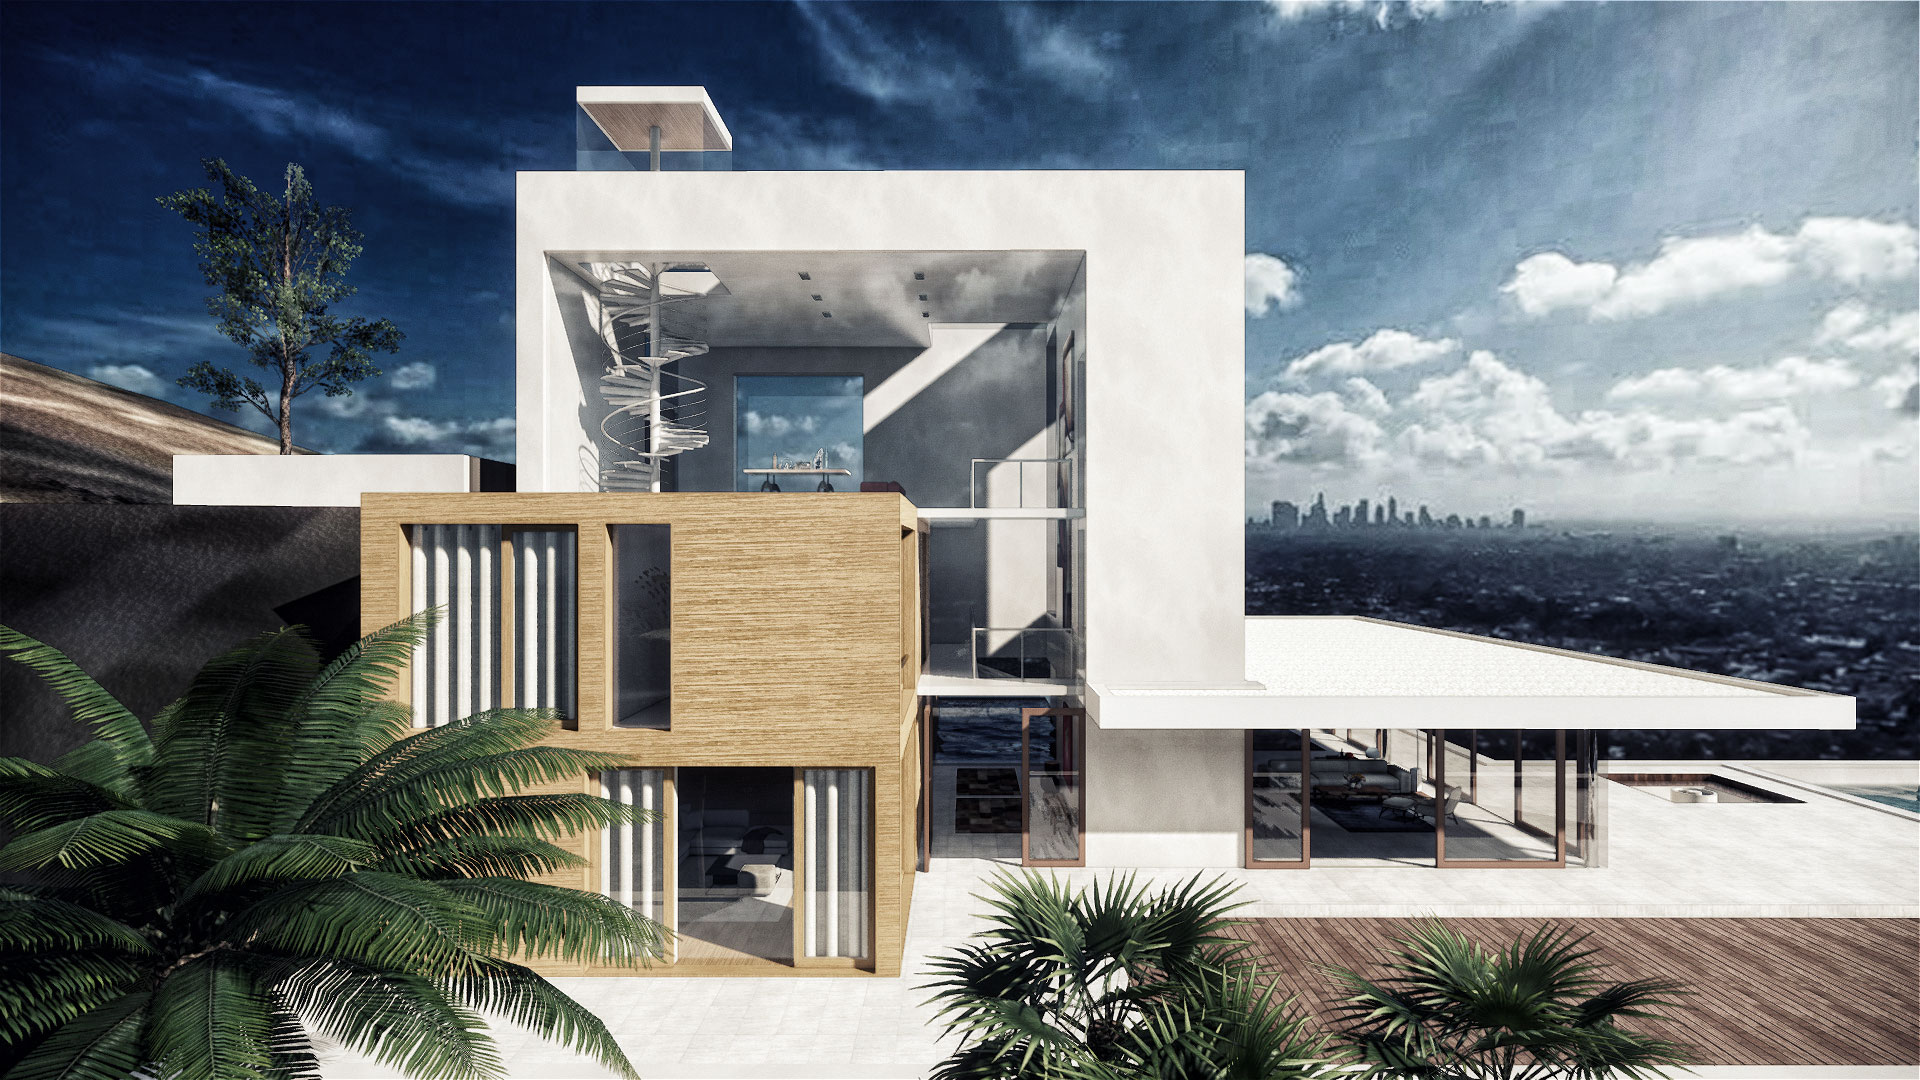 If evolution means perfecting one's life to higher and higher levels, Evolvere Abitando is about achieving it with dwelling as a means. - Fabrizia Zorzenon, Architect & Home Image Specialist